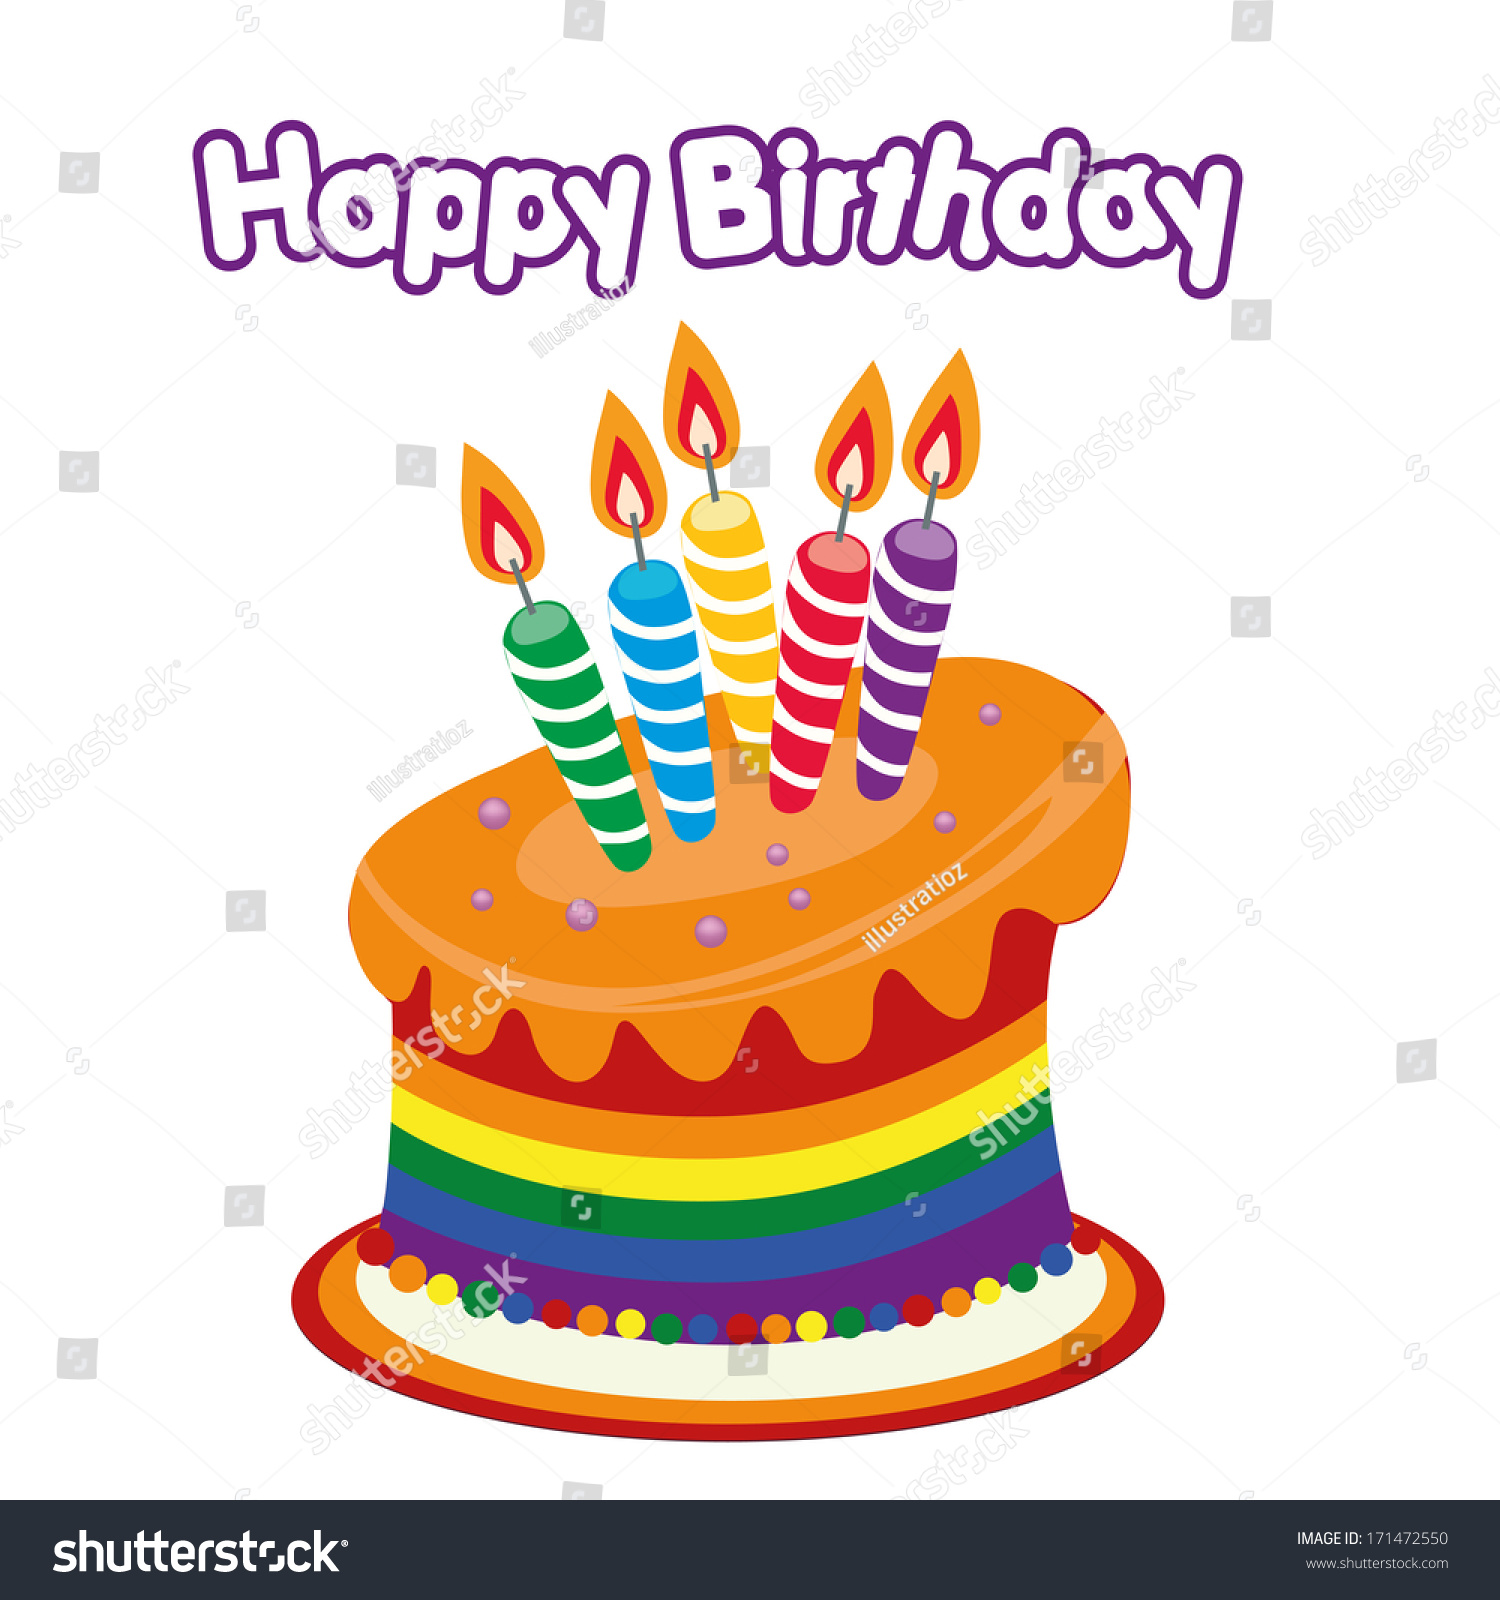 Birthday Cake Symbol Text Image Inspiration of Cake and Birthday